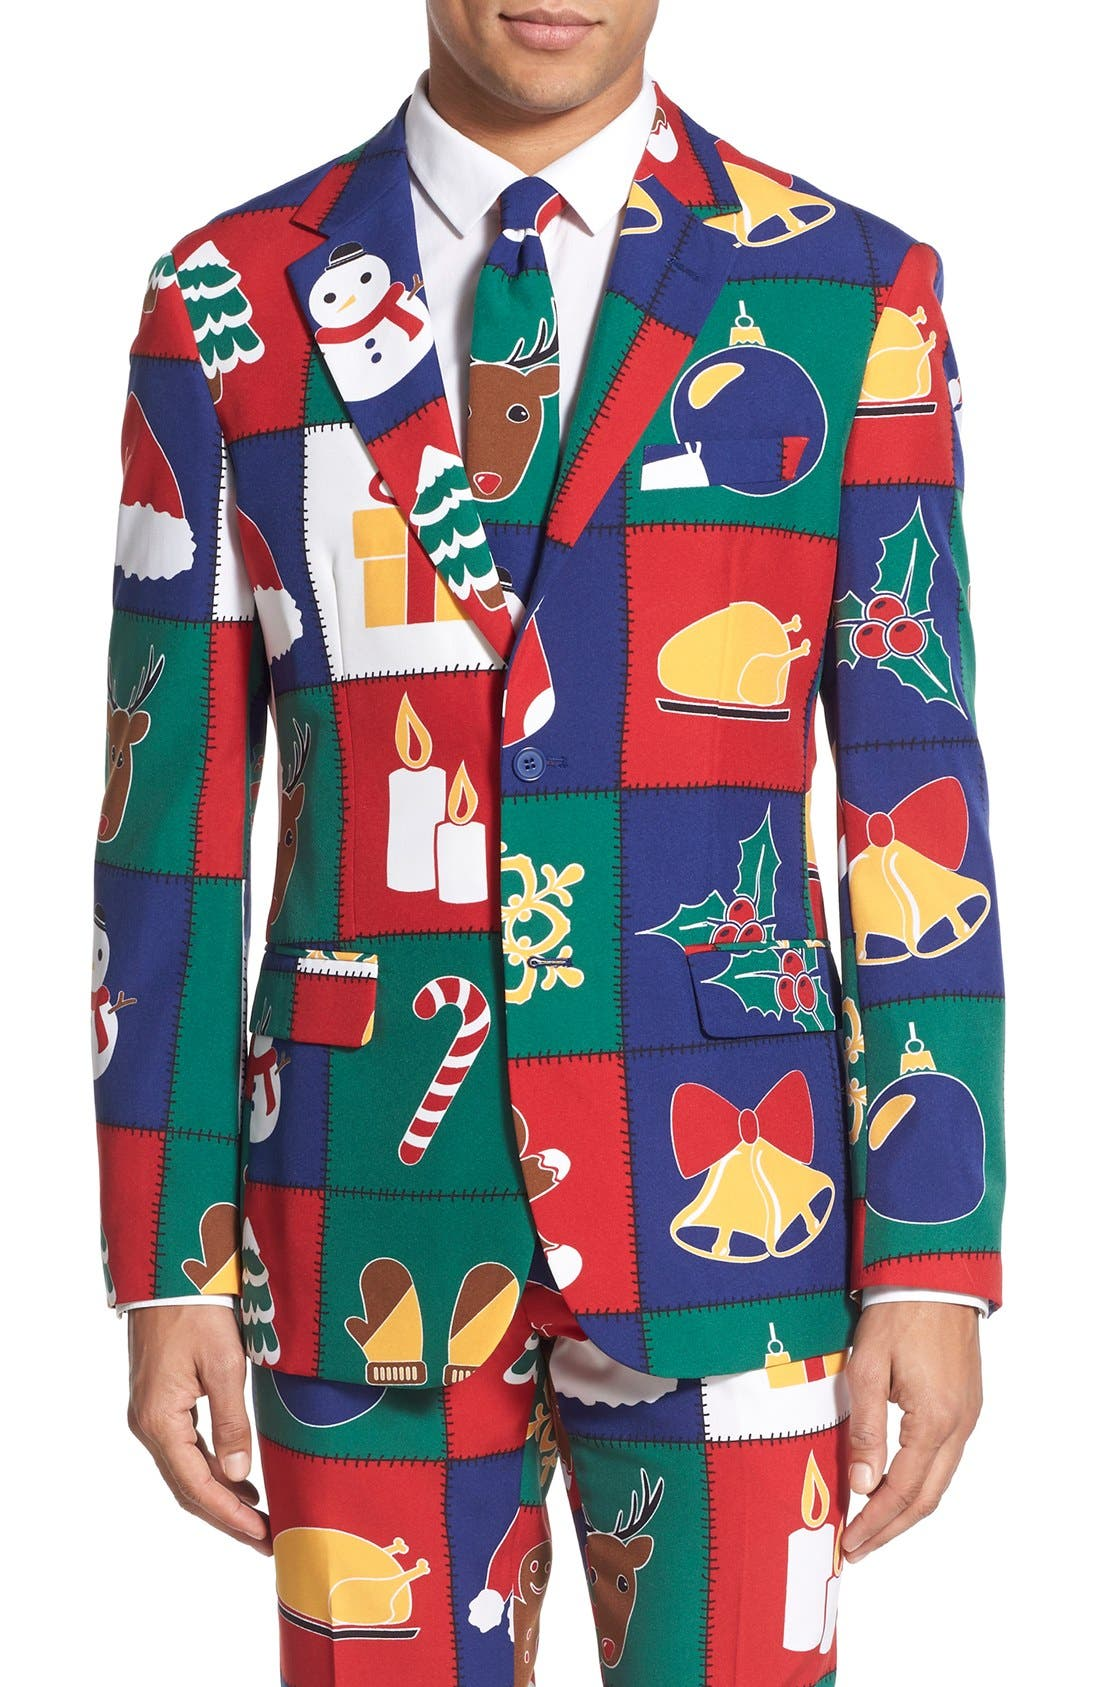 'Quilty Pleasure' Holiday Suit & Tie,                             Alternate thumbnail 4, color,                             Green